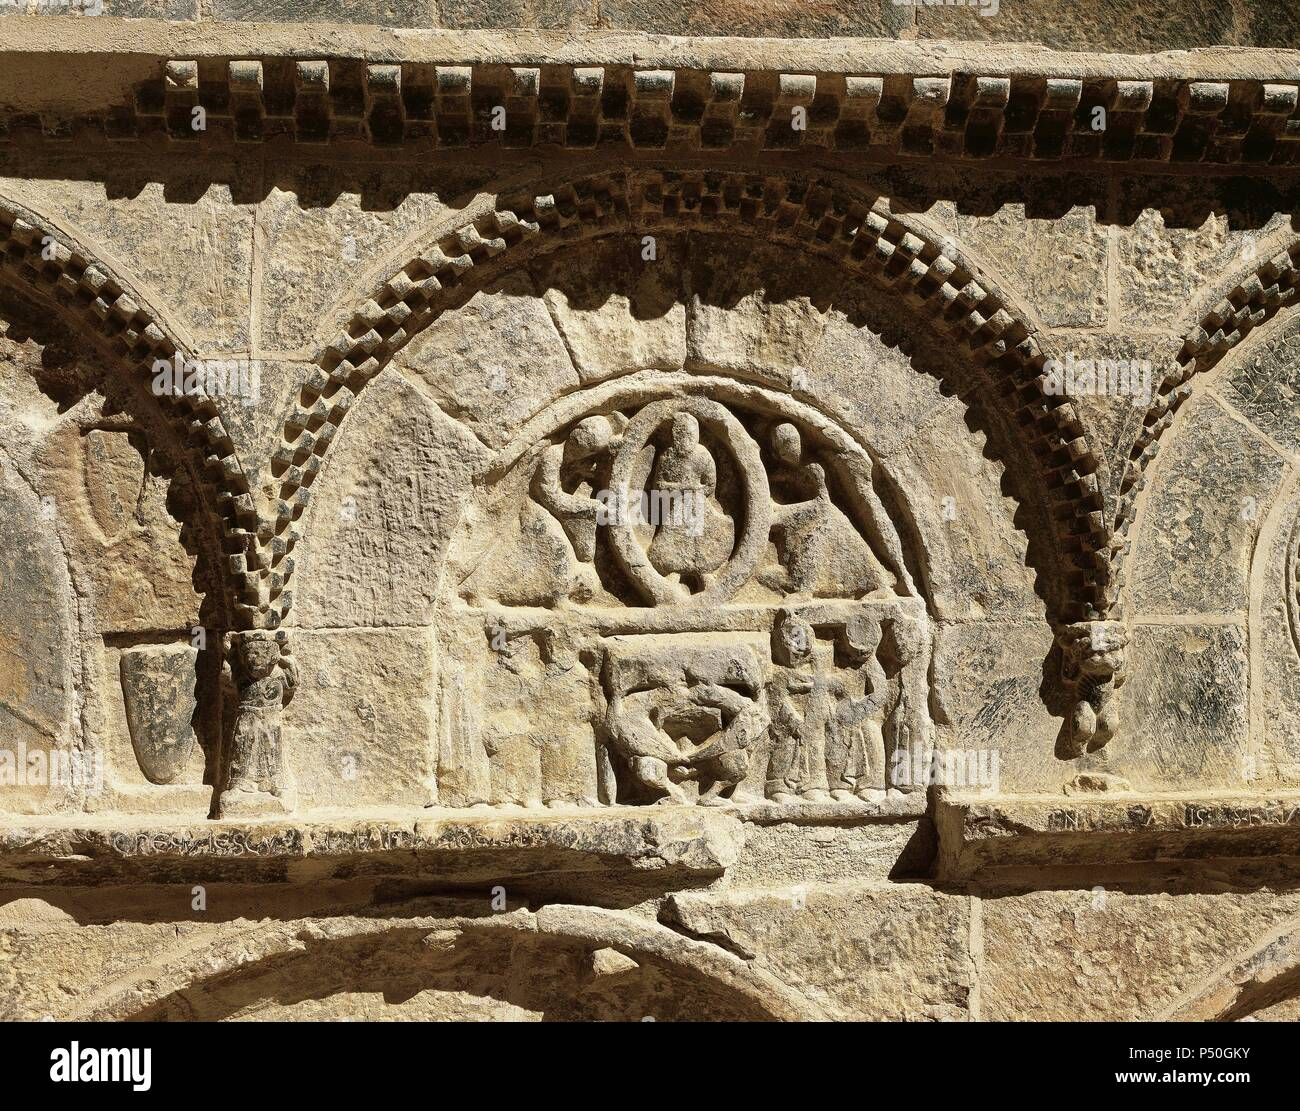 Monastery of San Juan de la Pena. Pantheon of the Nobles. Detail of an relief depicting two angels raising the soul of the deceased in mandorla. At the bottom, Epiphany. Aragon. Spain. - Stock Image